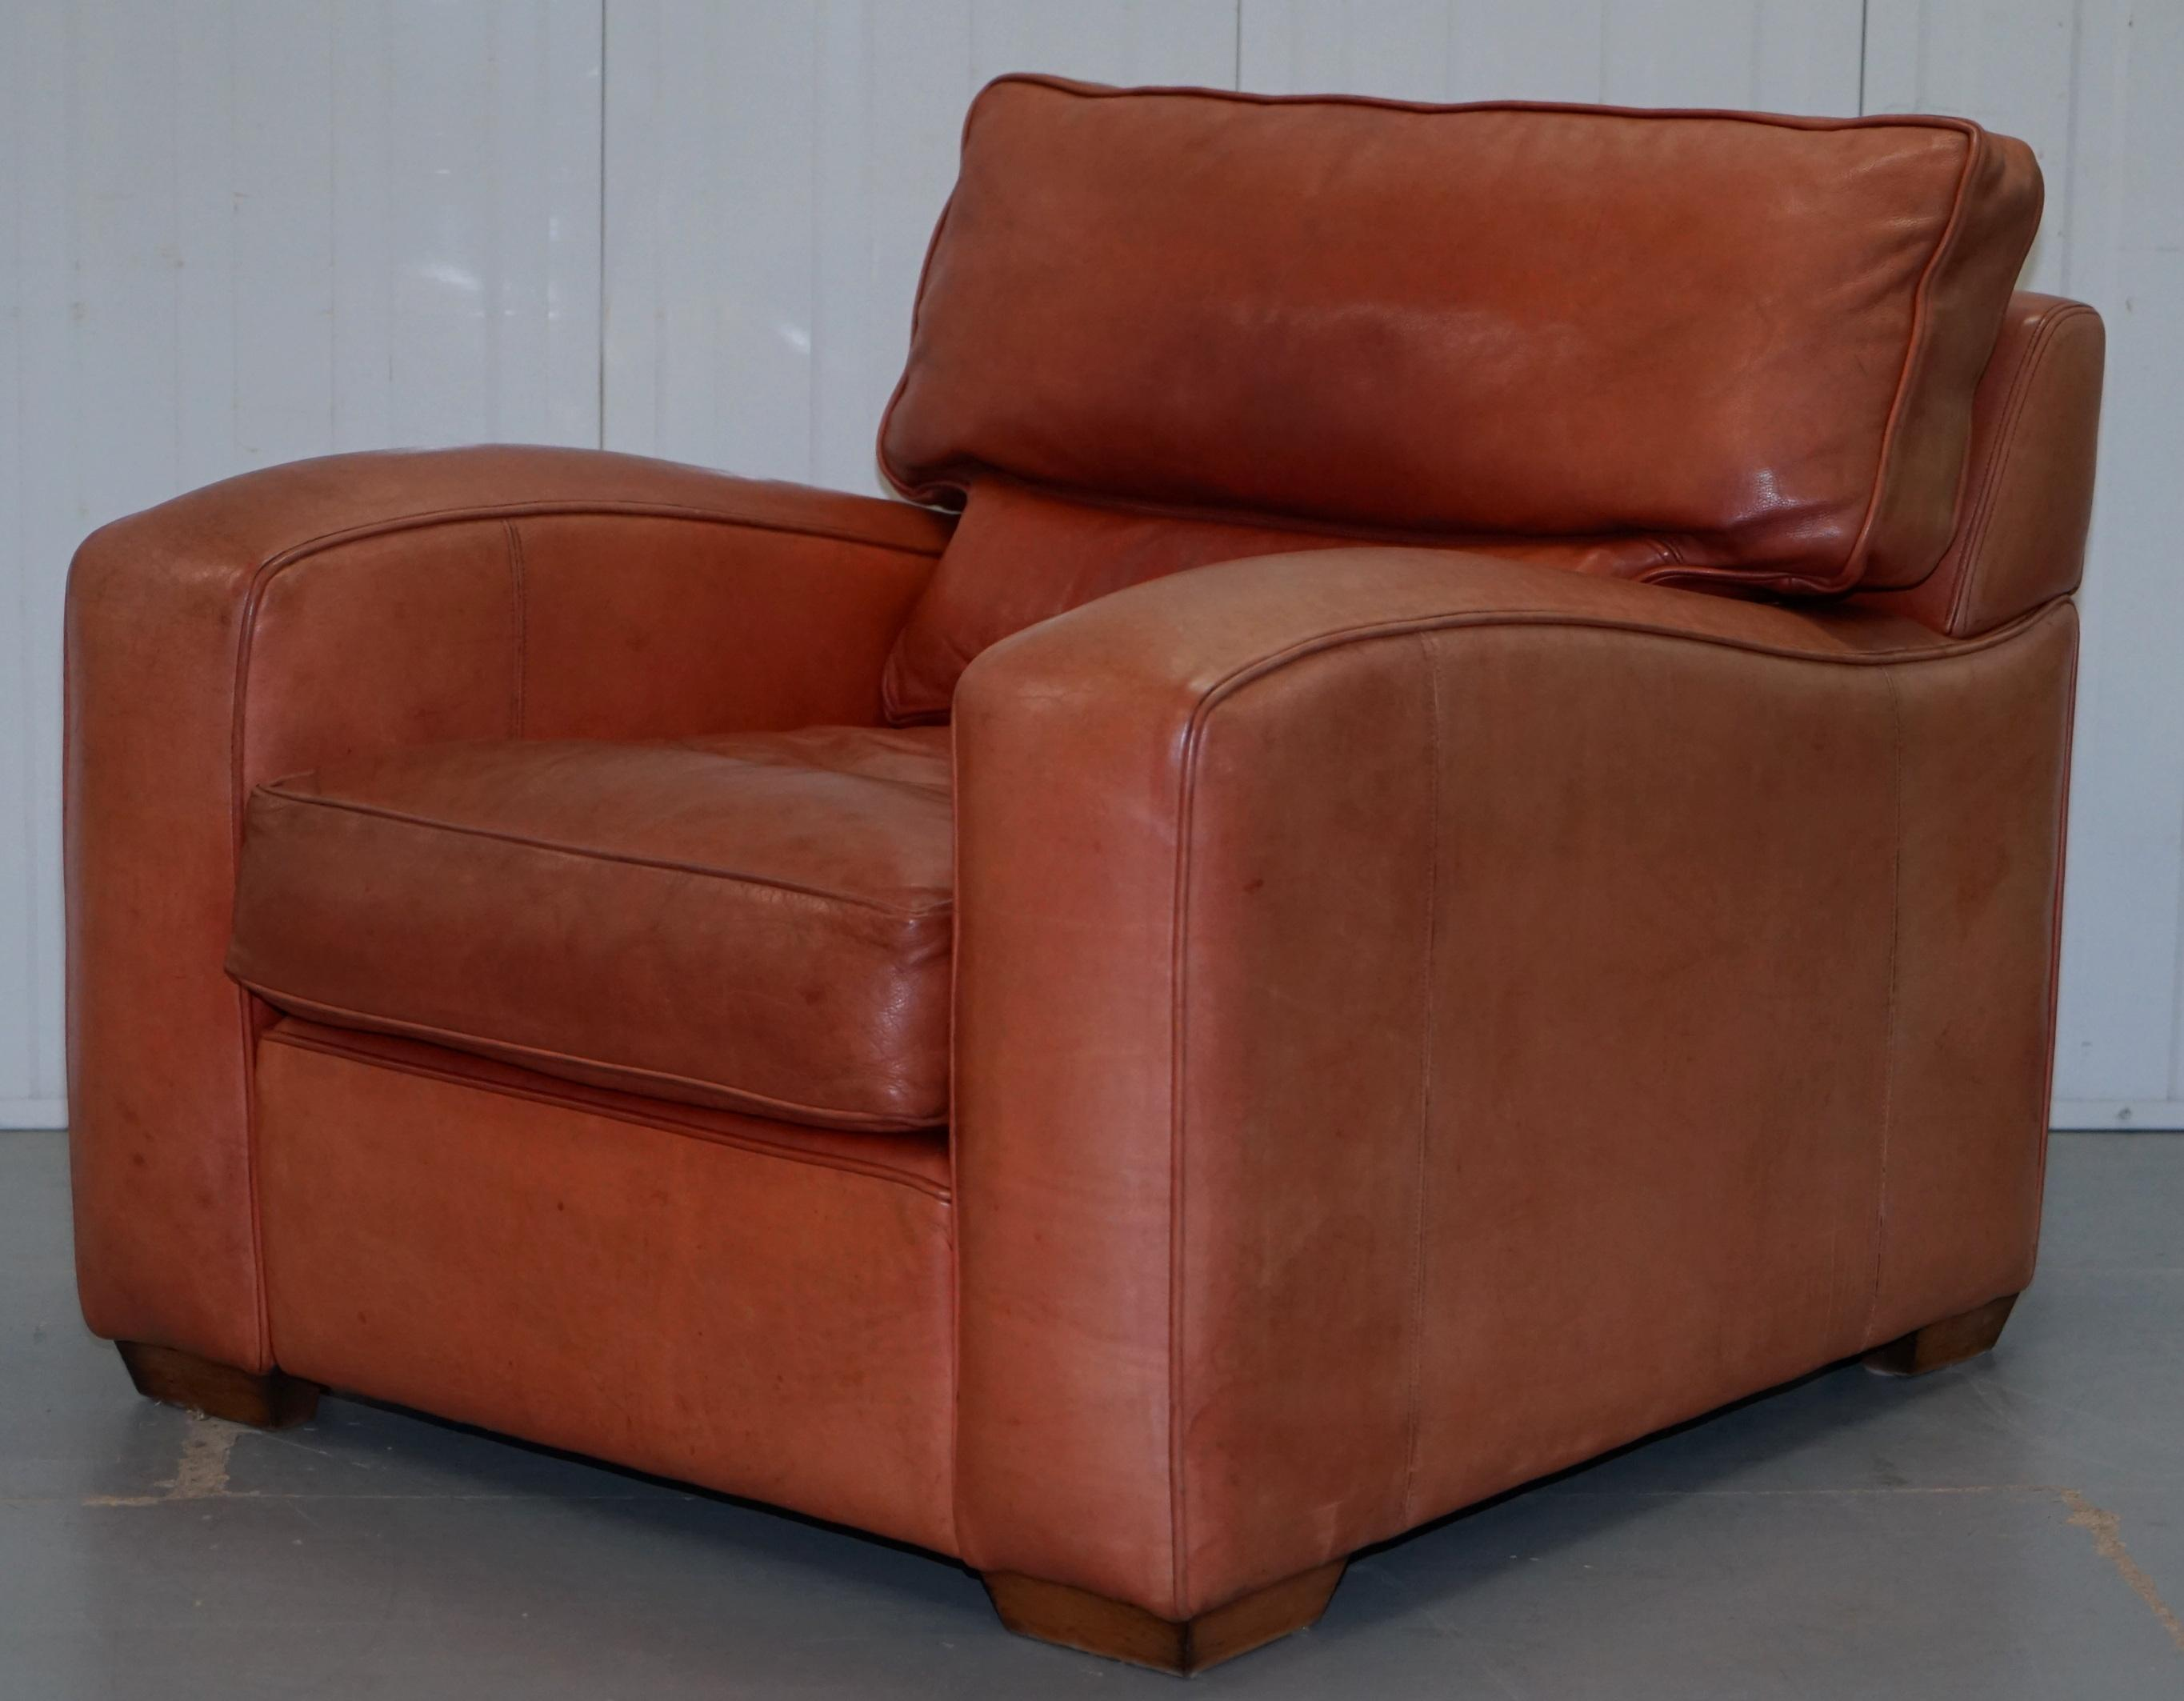 Duresta Panther Brown Leather Armchair and Oversized Plantation